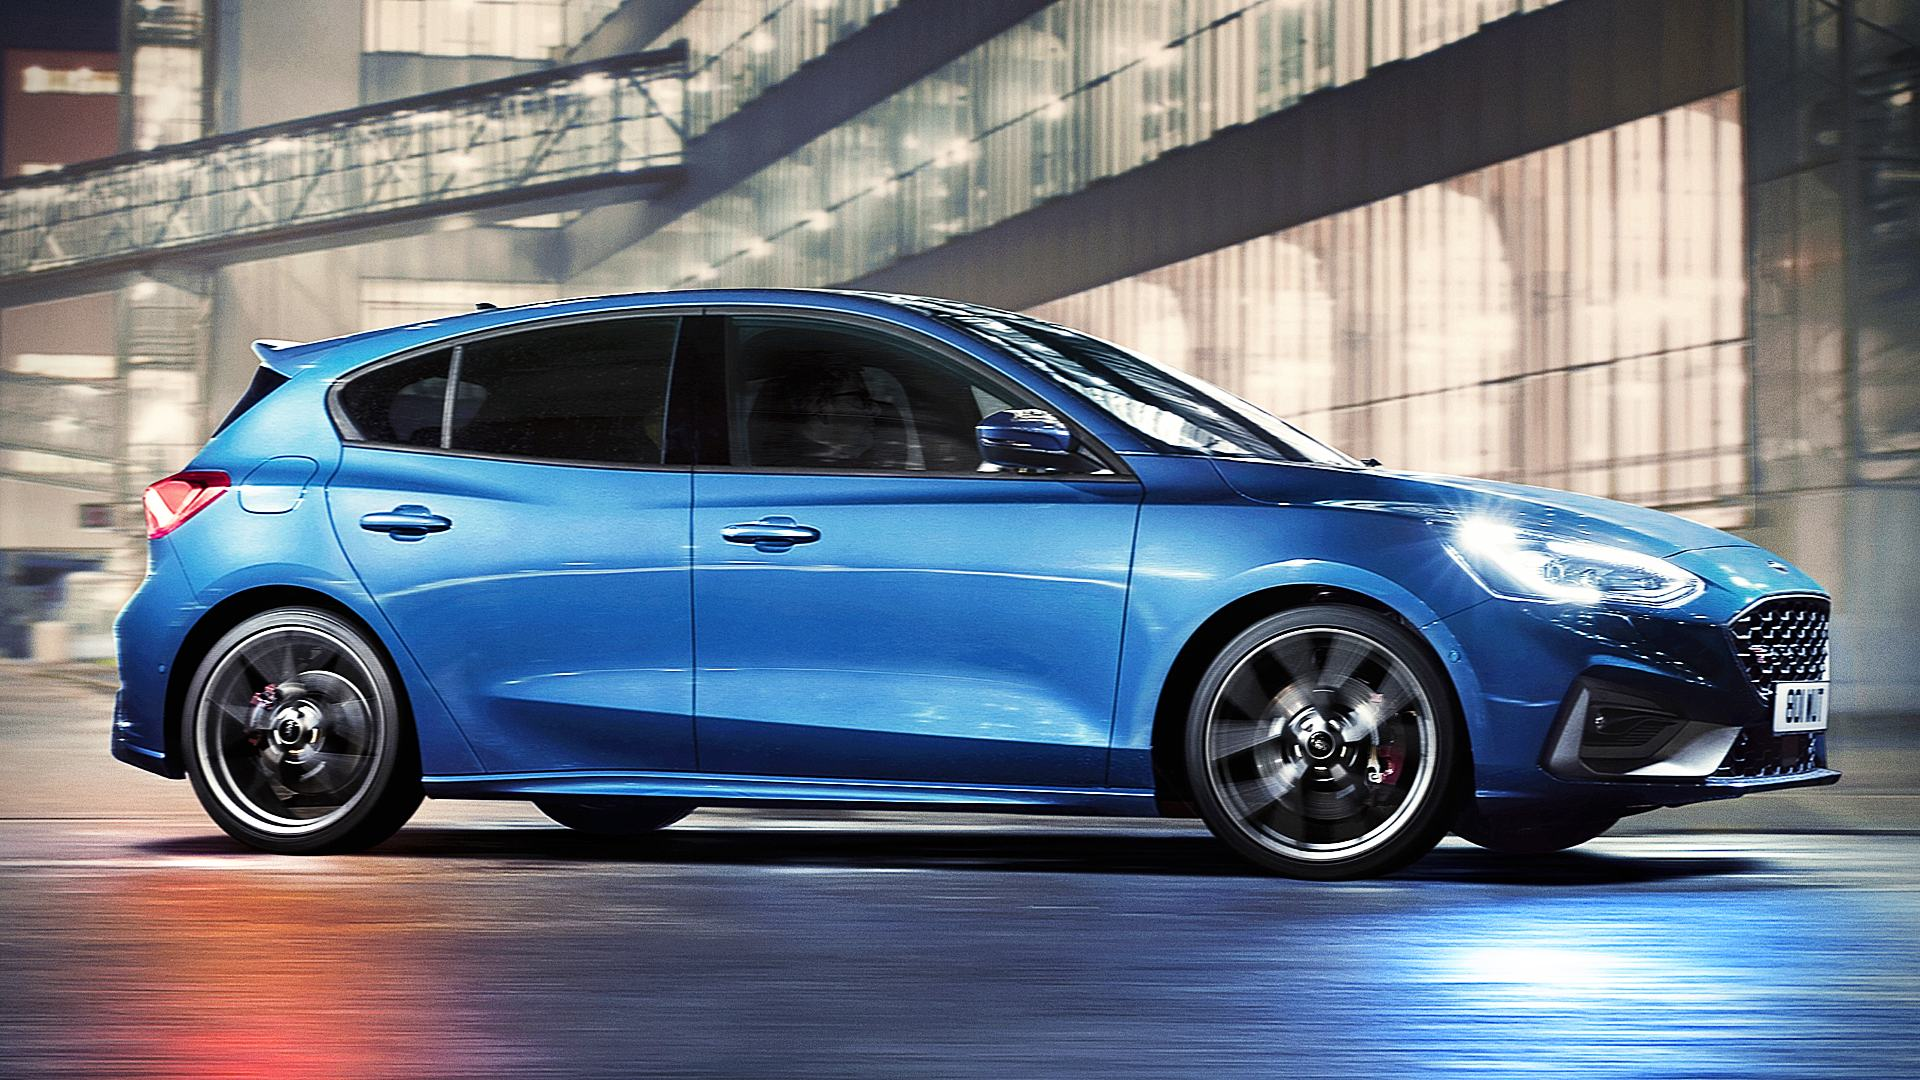 2020 Ford Focus ST Images Photos